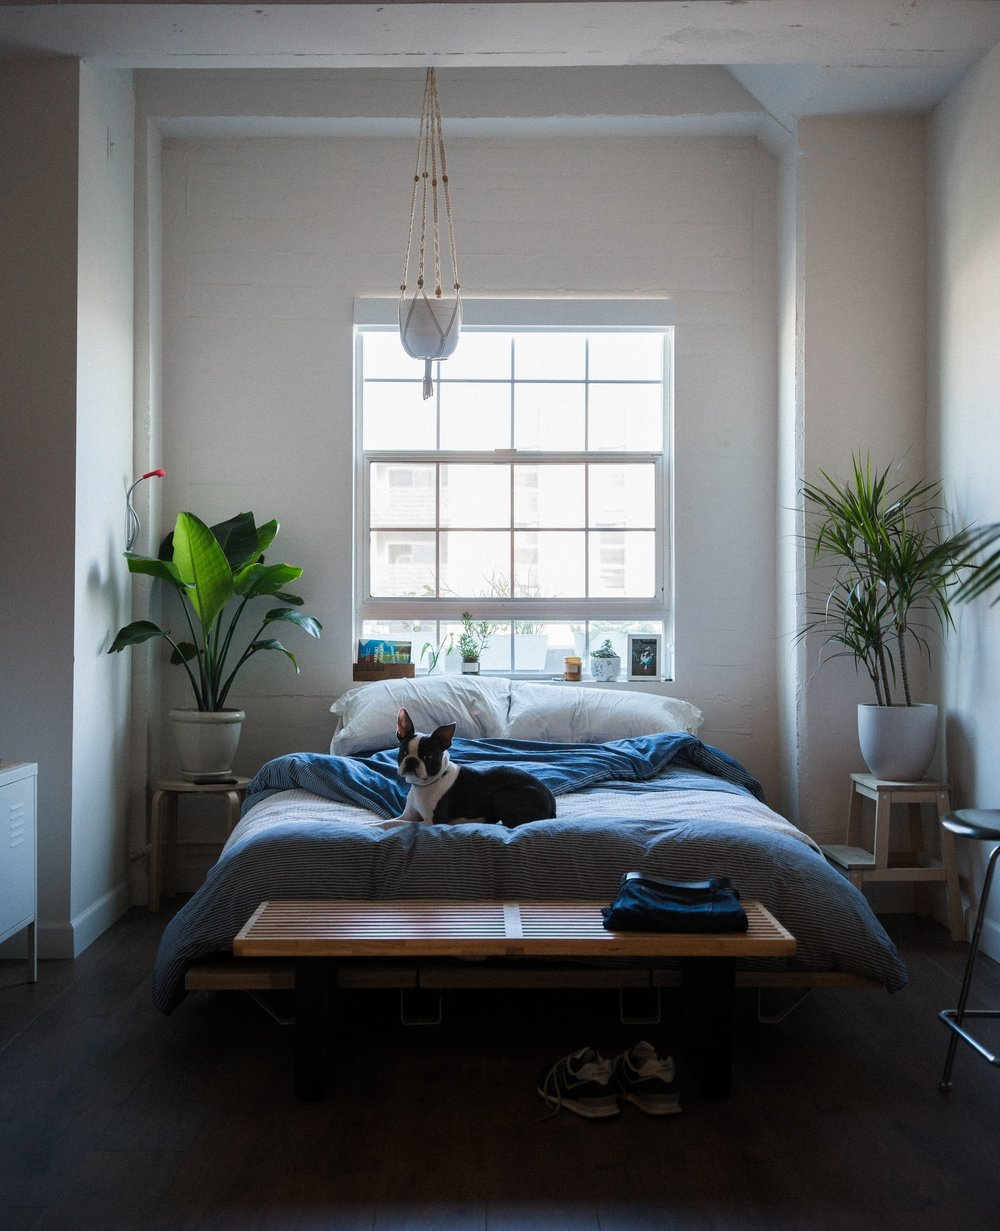 7. Choose low profile furniture - Low profile furniture helps ceilings to look higher and small rooms brighter. As windows are unobstructed the view is showcased and light floods in. An abundance of natural light rejuvenates the spirit after a hard days work. Your tiny home is now a delicious retreat.